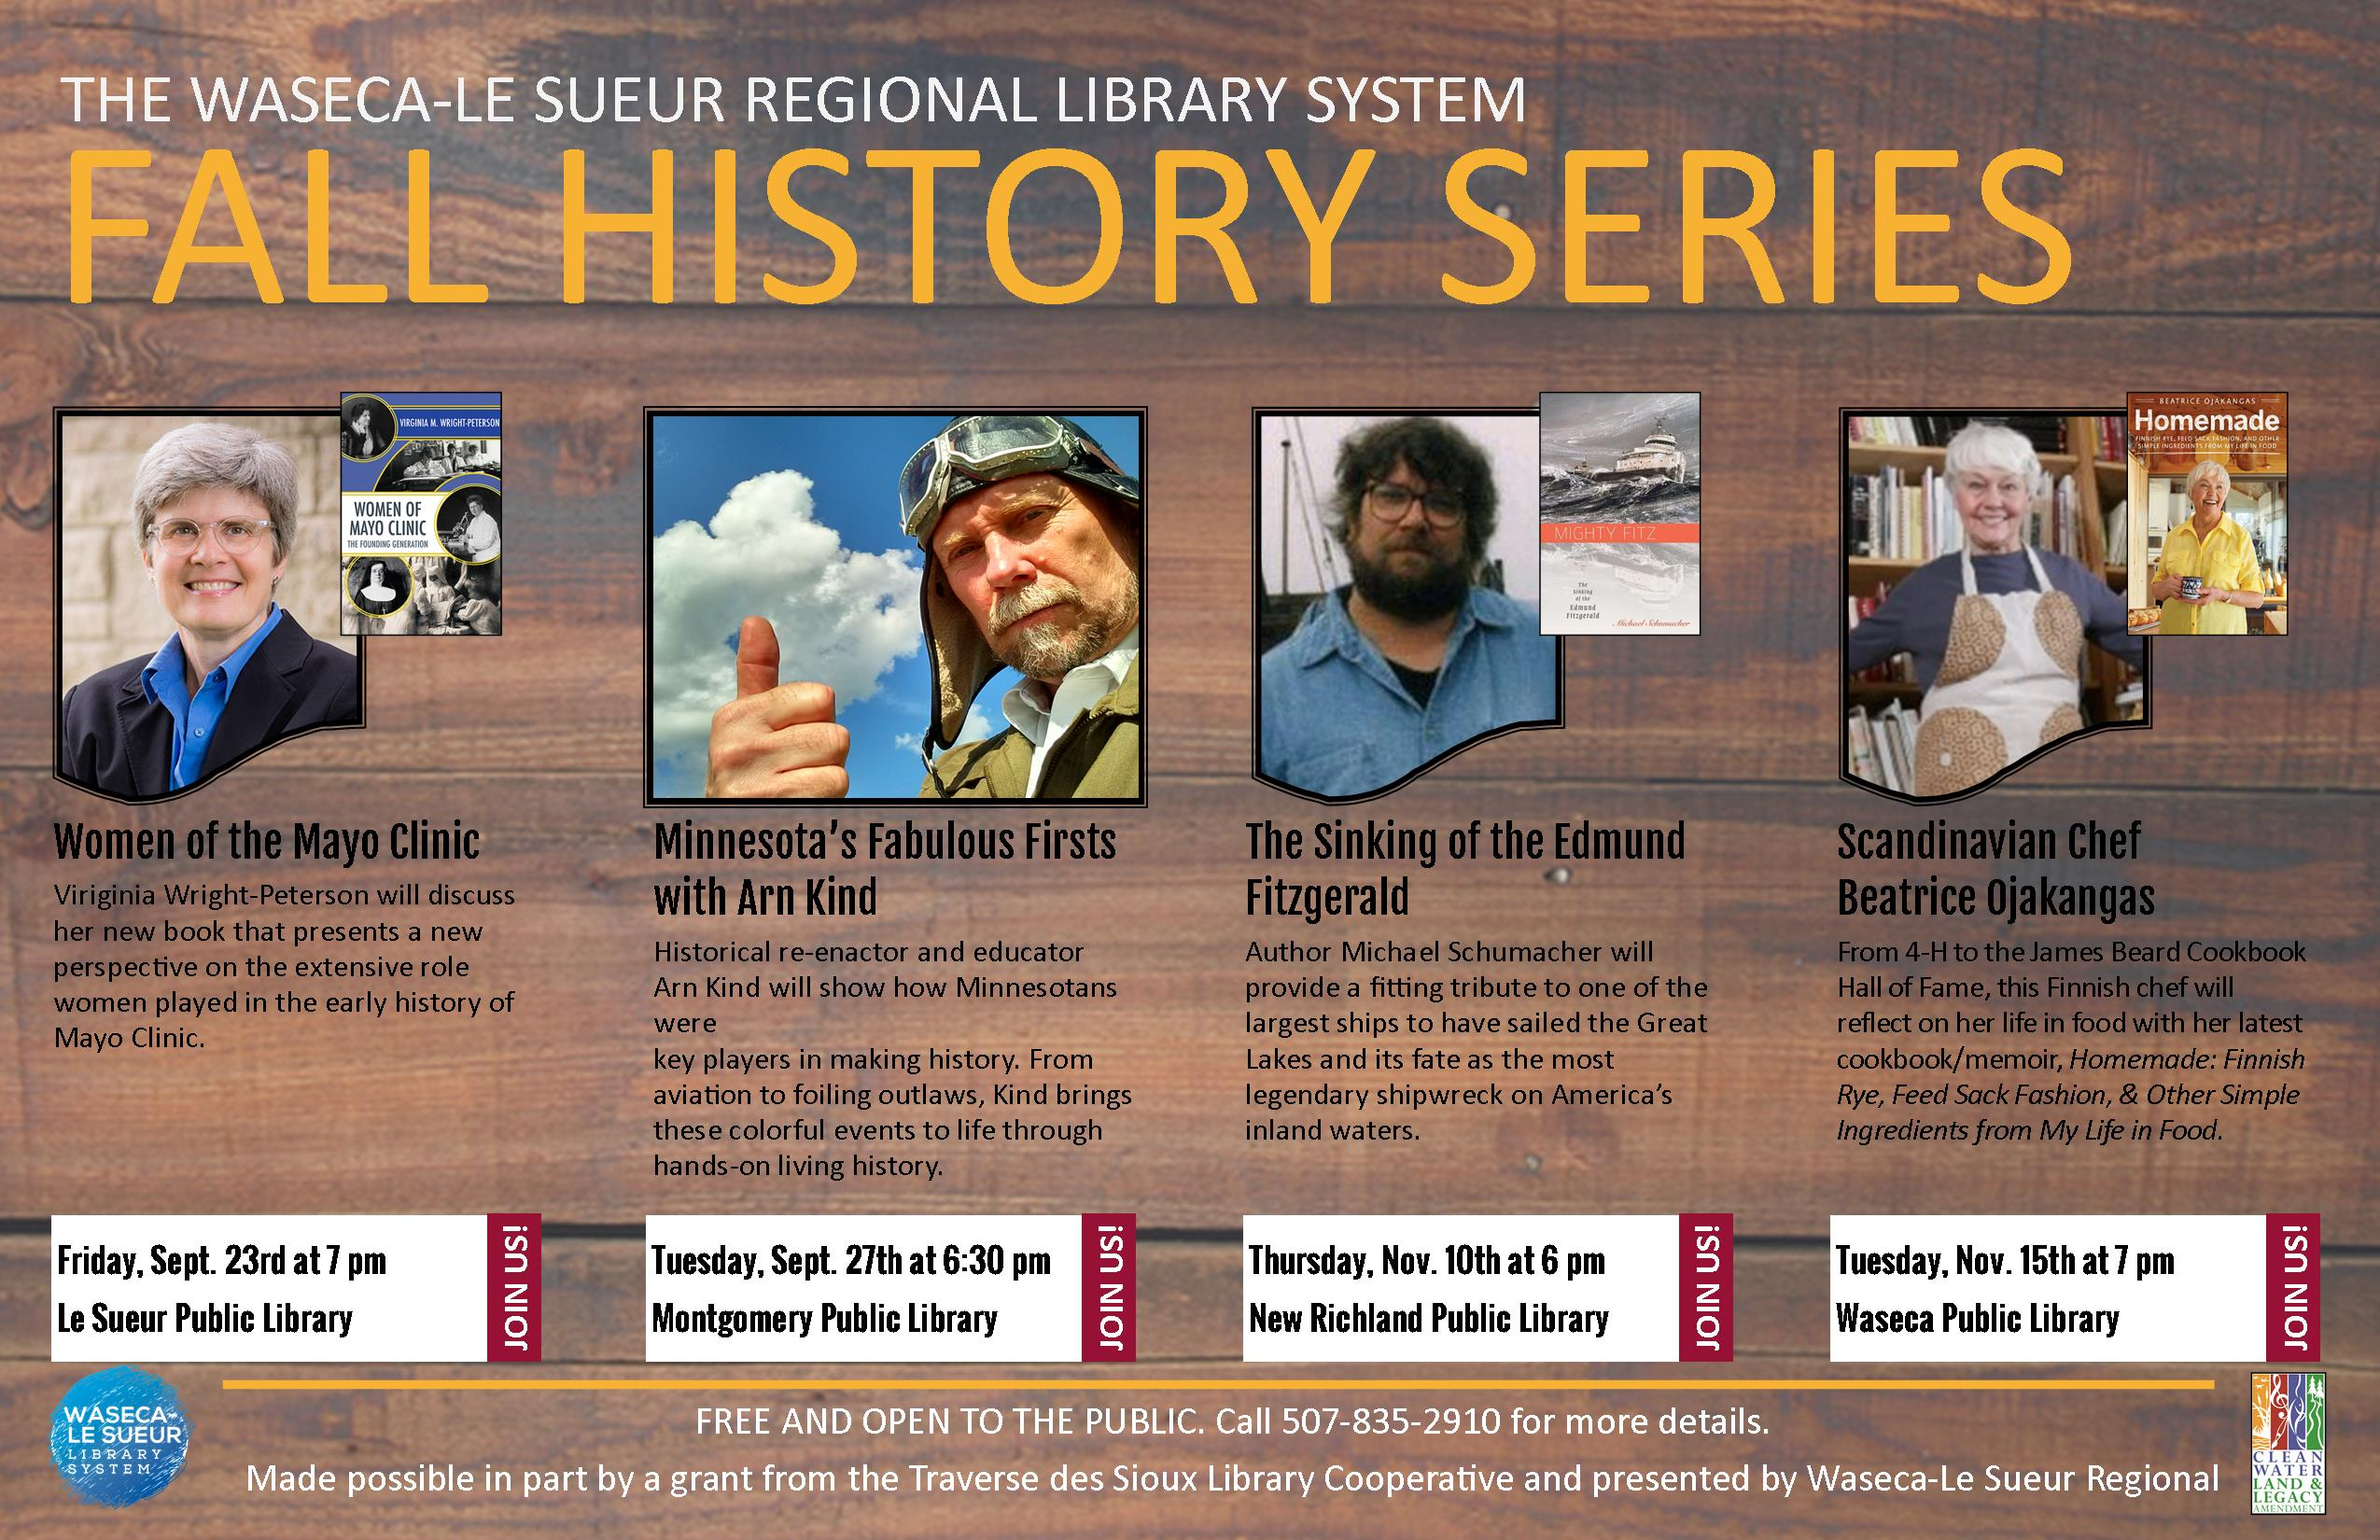 Announcing Our Fall History Series